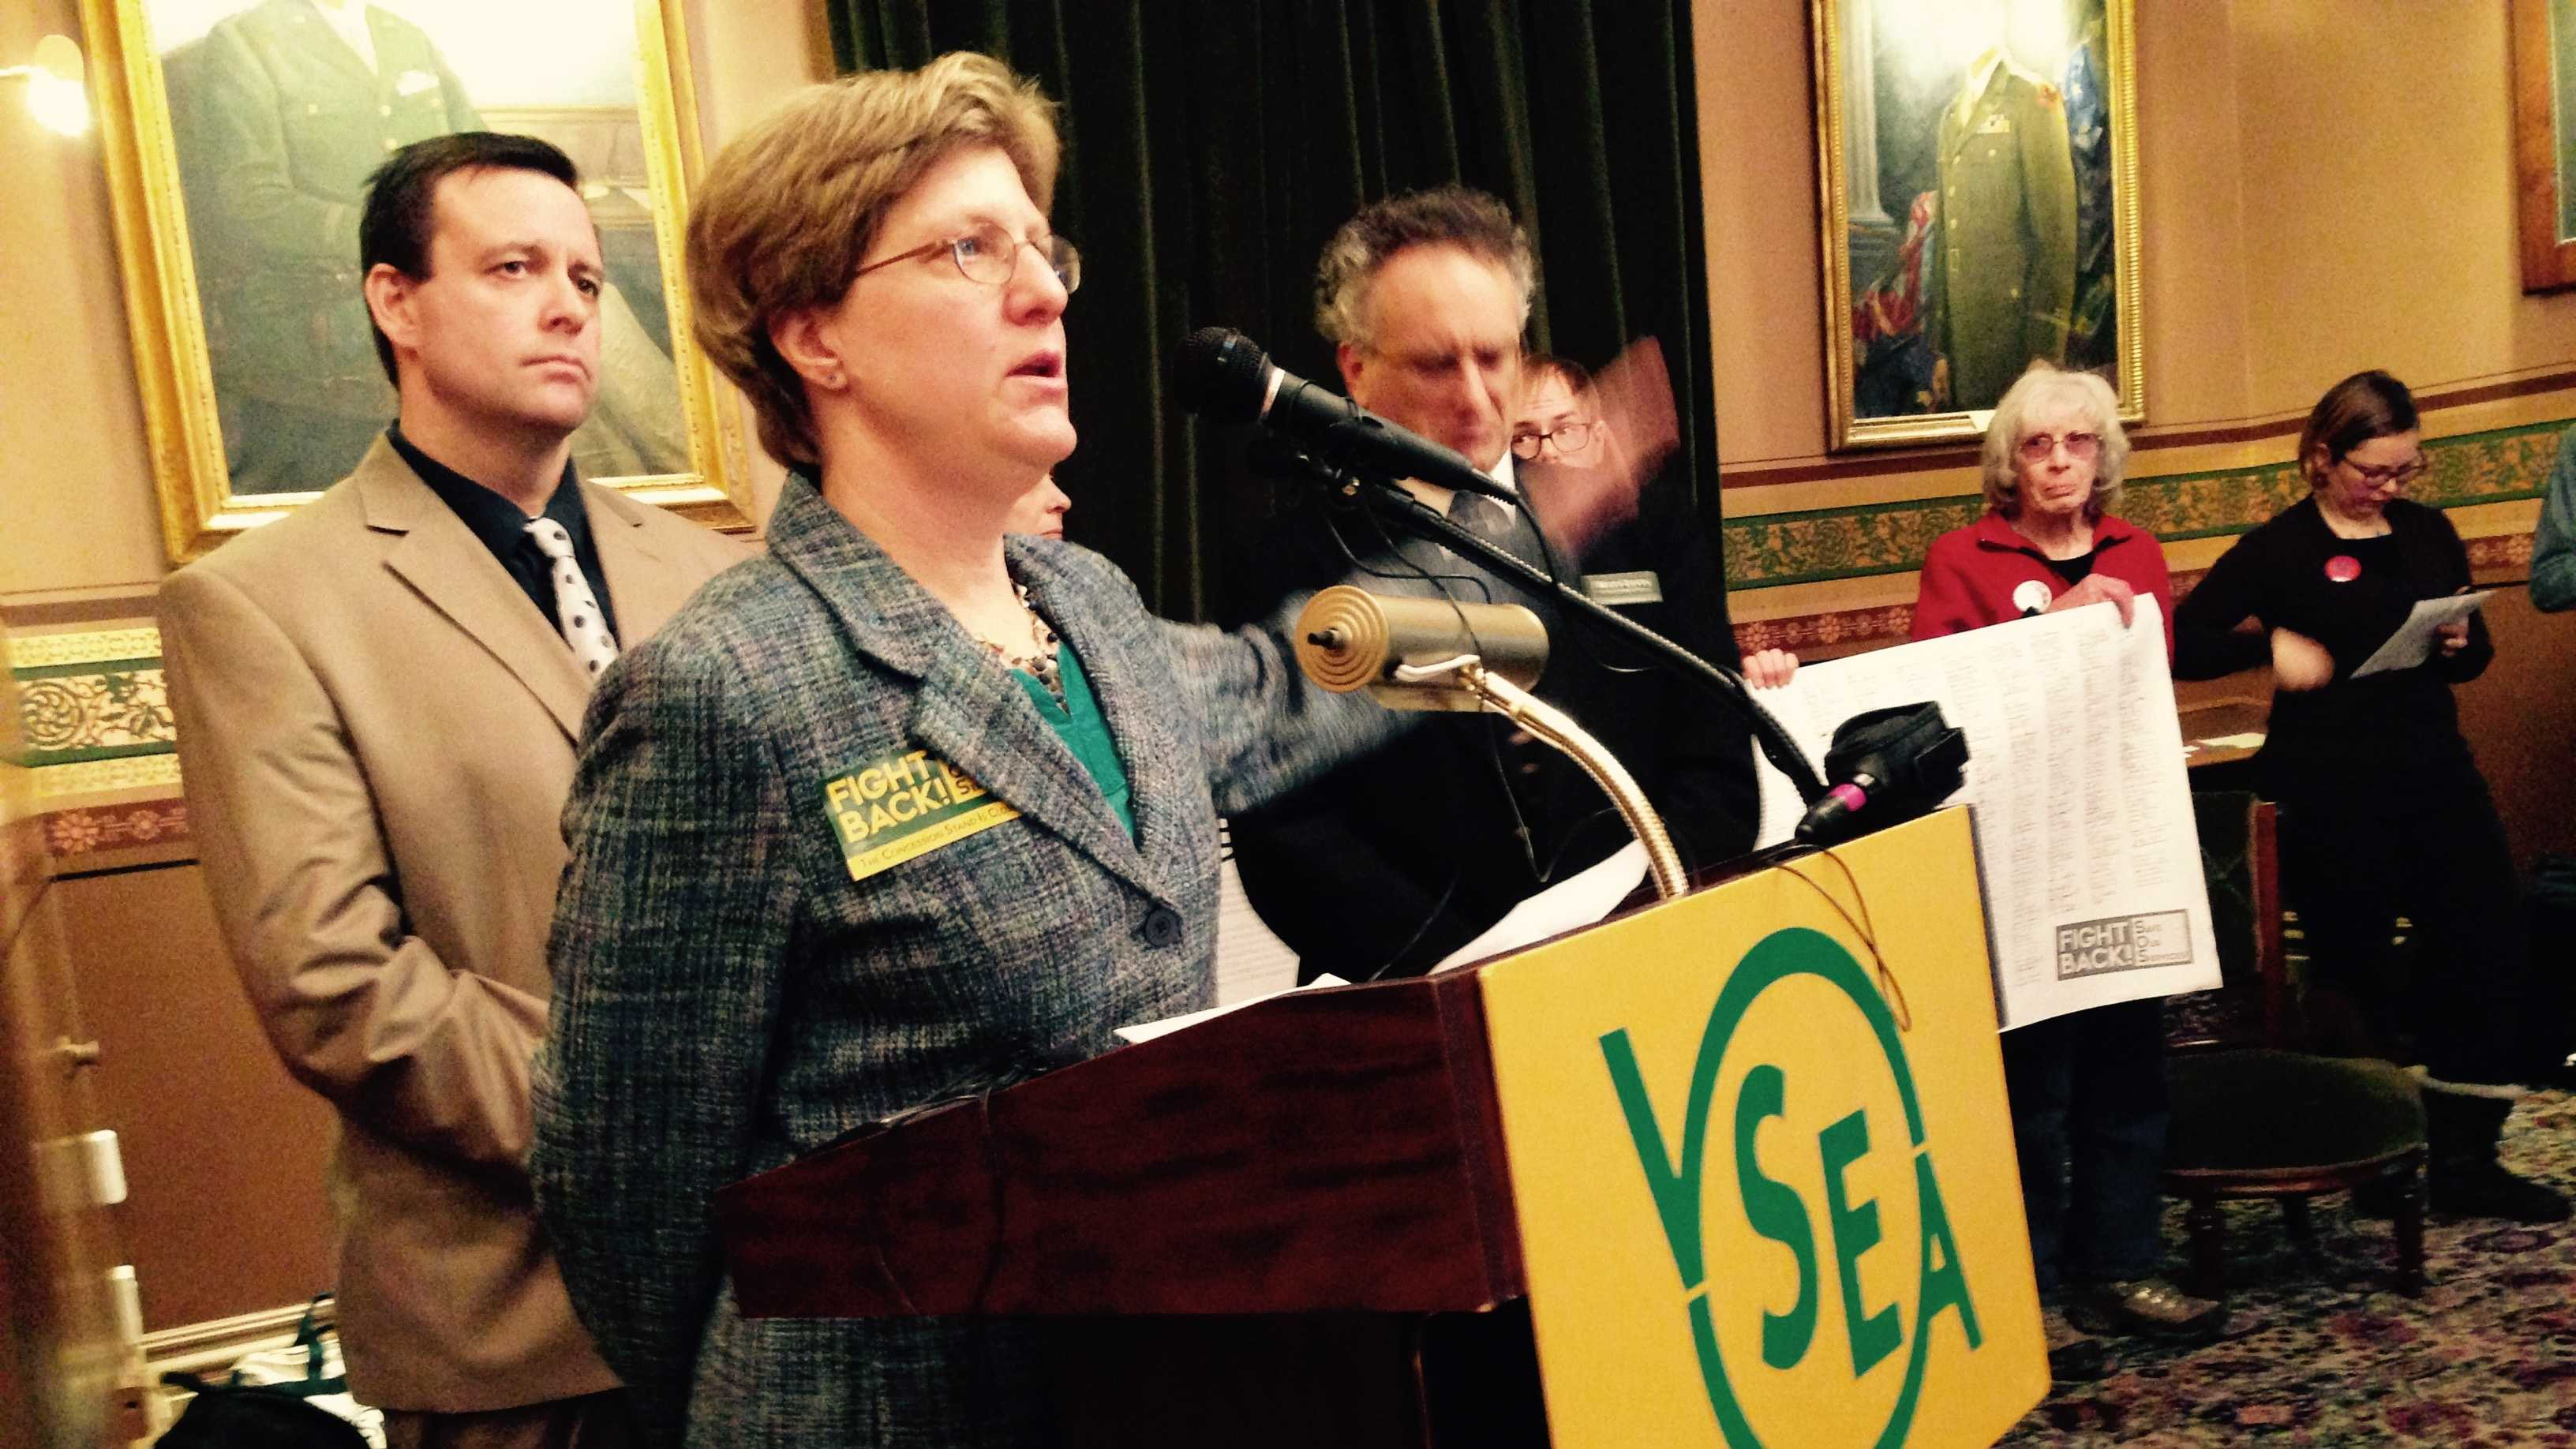 Dr. Leslie Matthews, a state employee, speaking at the VSEA's 'Fight Back' news conference Thursday.